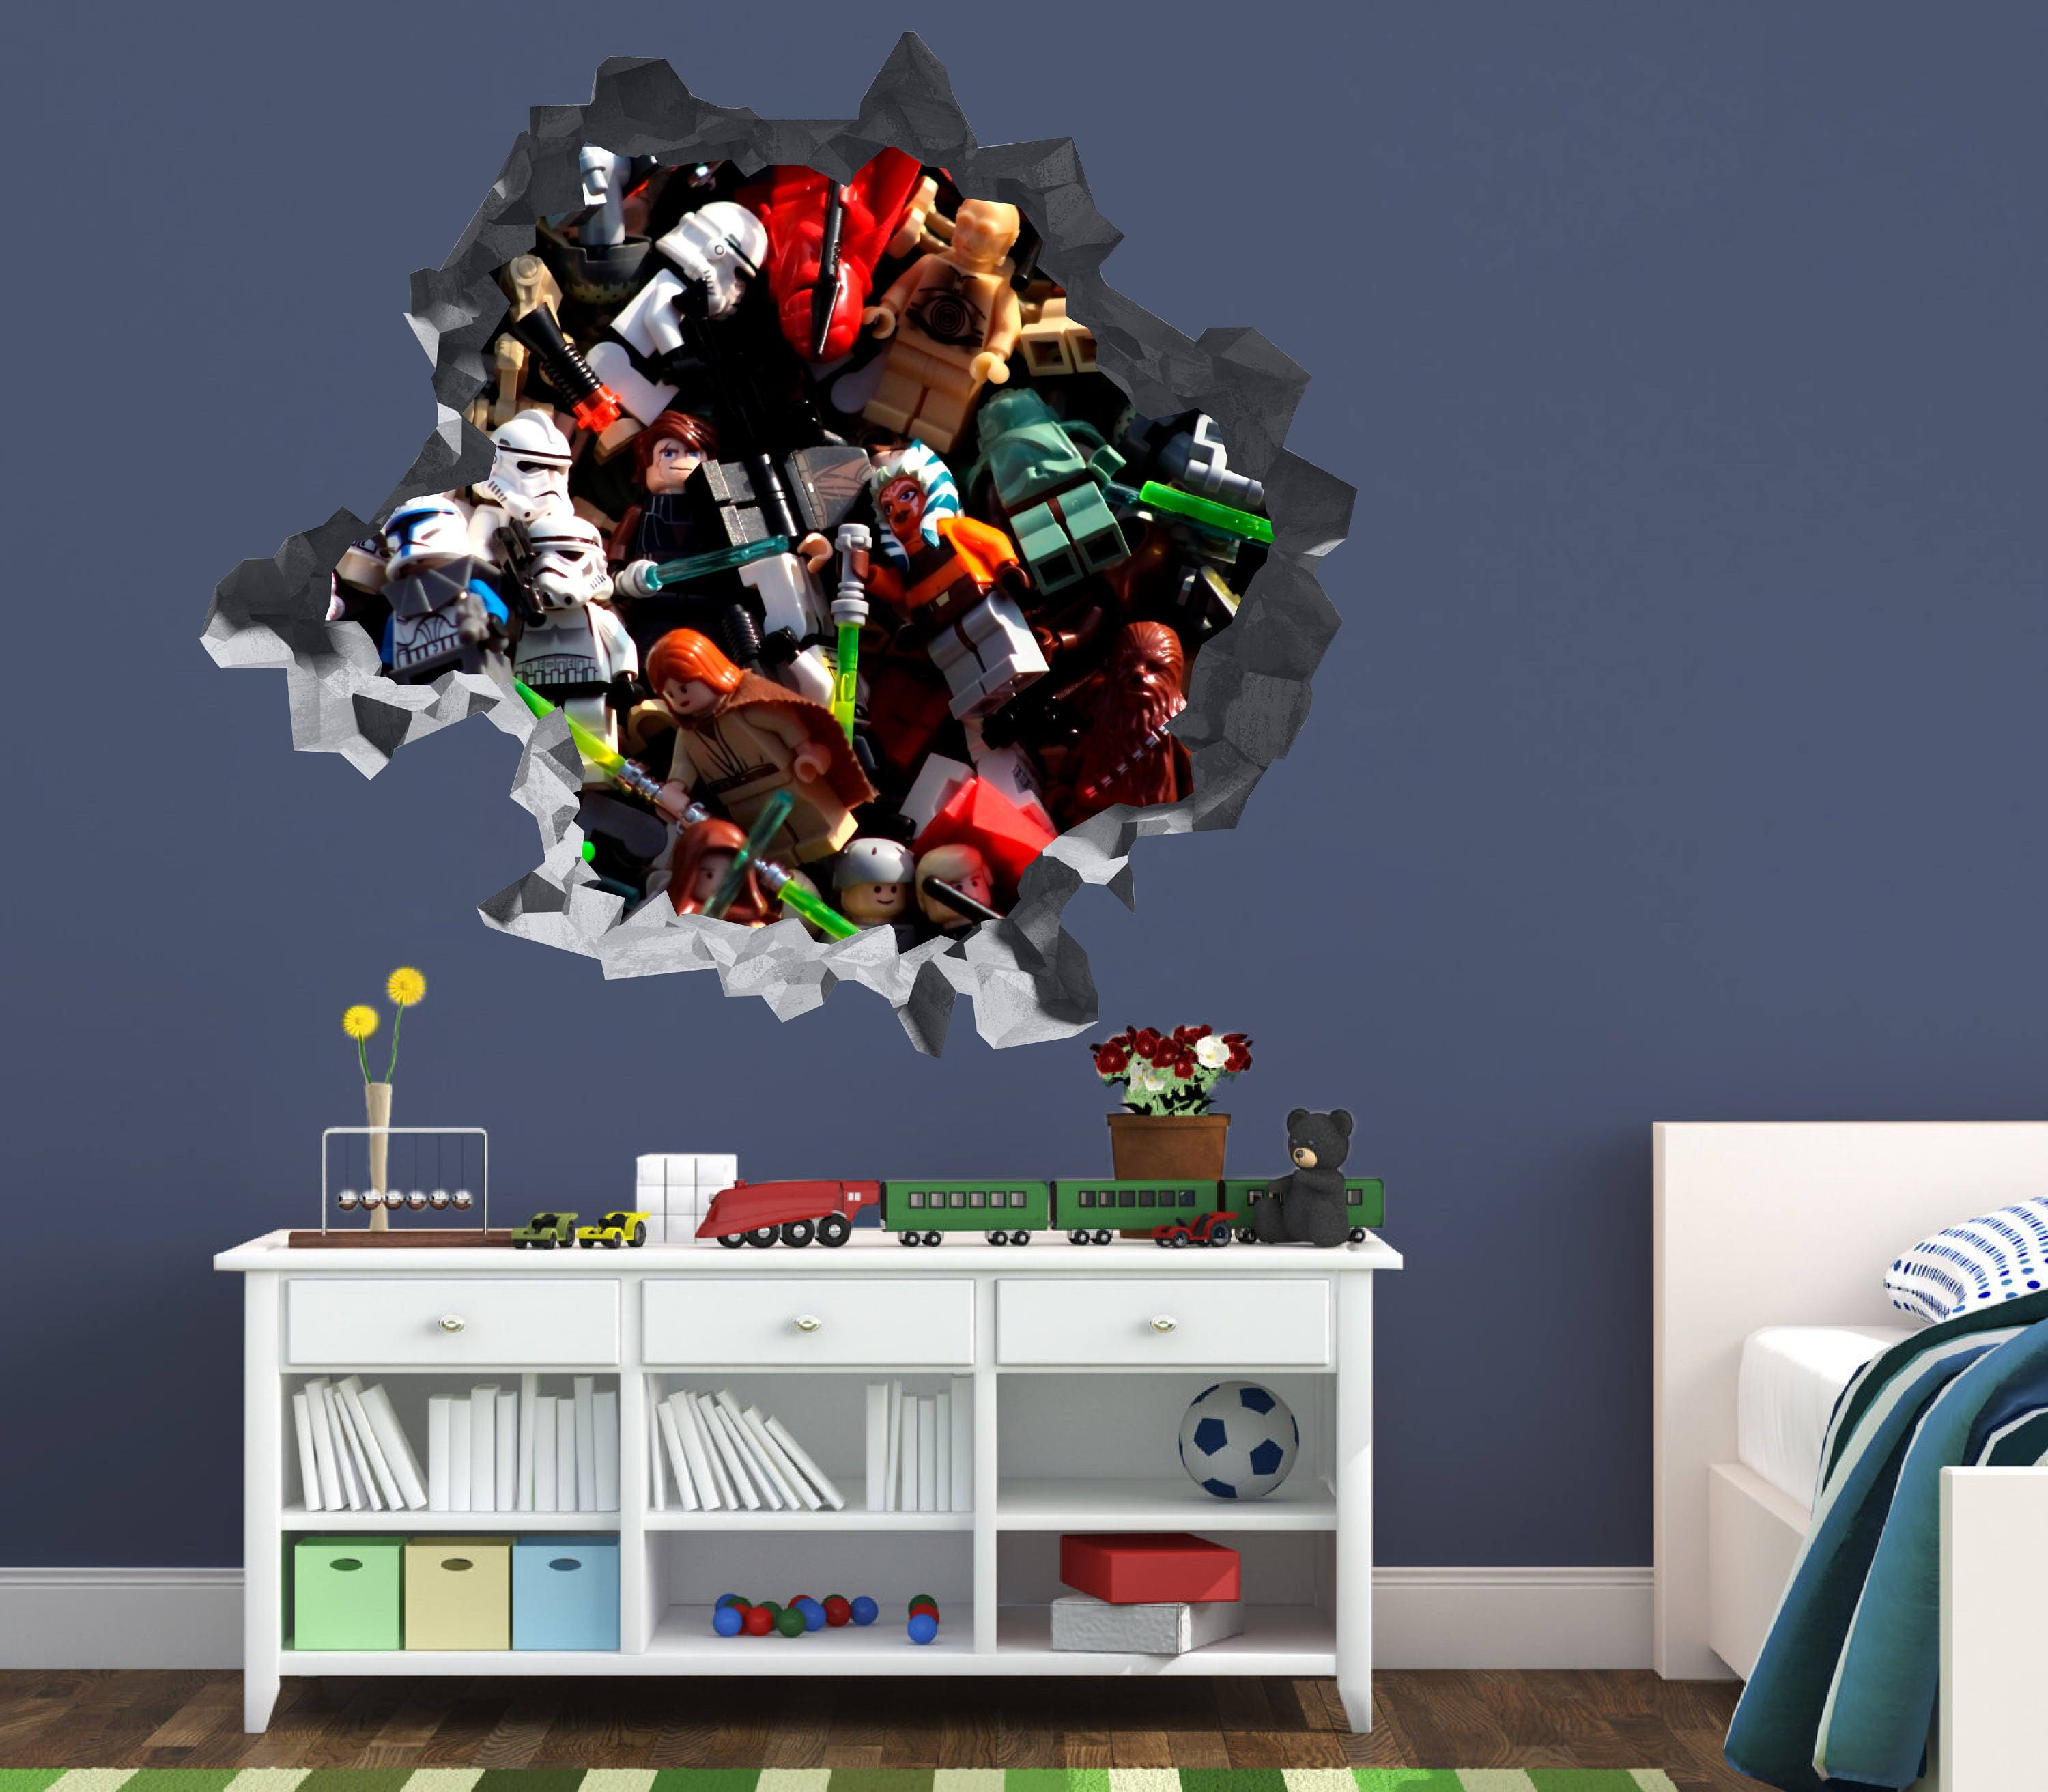 Lego Star Wars Characters Wall Decal Sticker Vinyl Decor Smashed 3D OP86